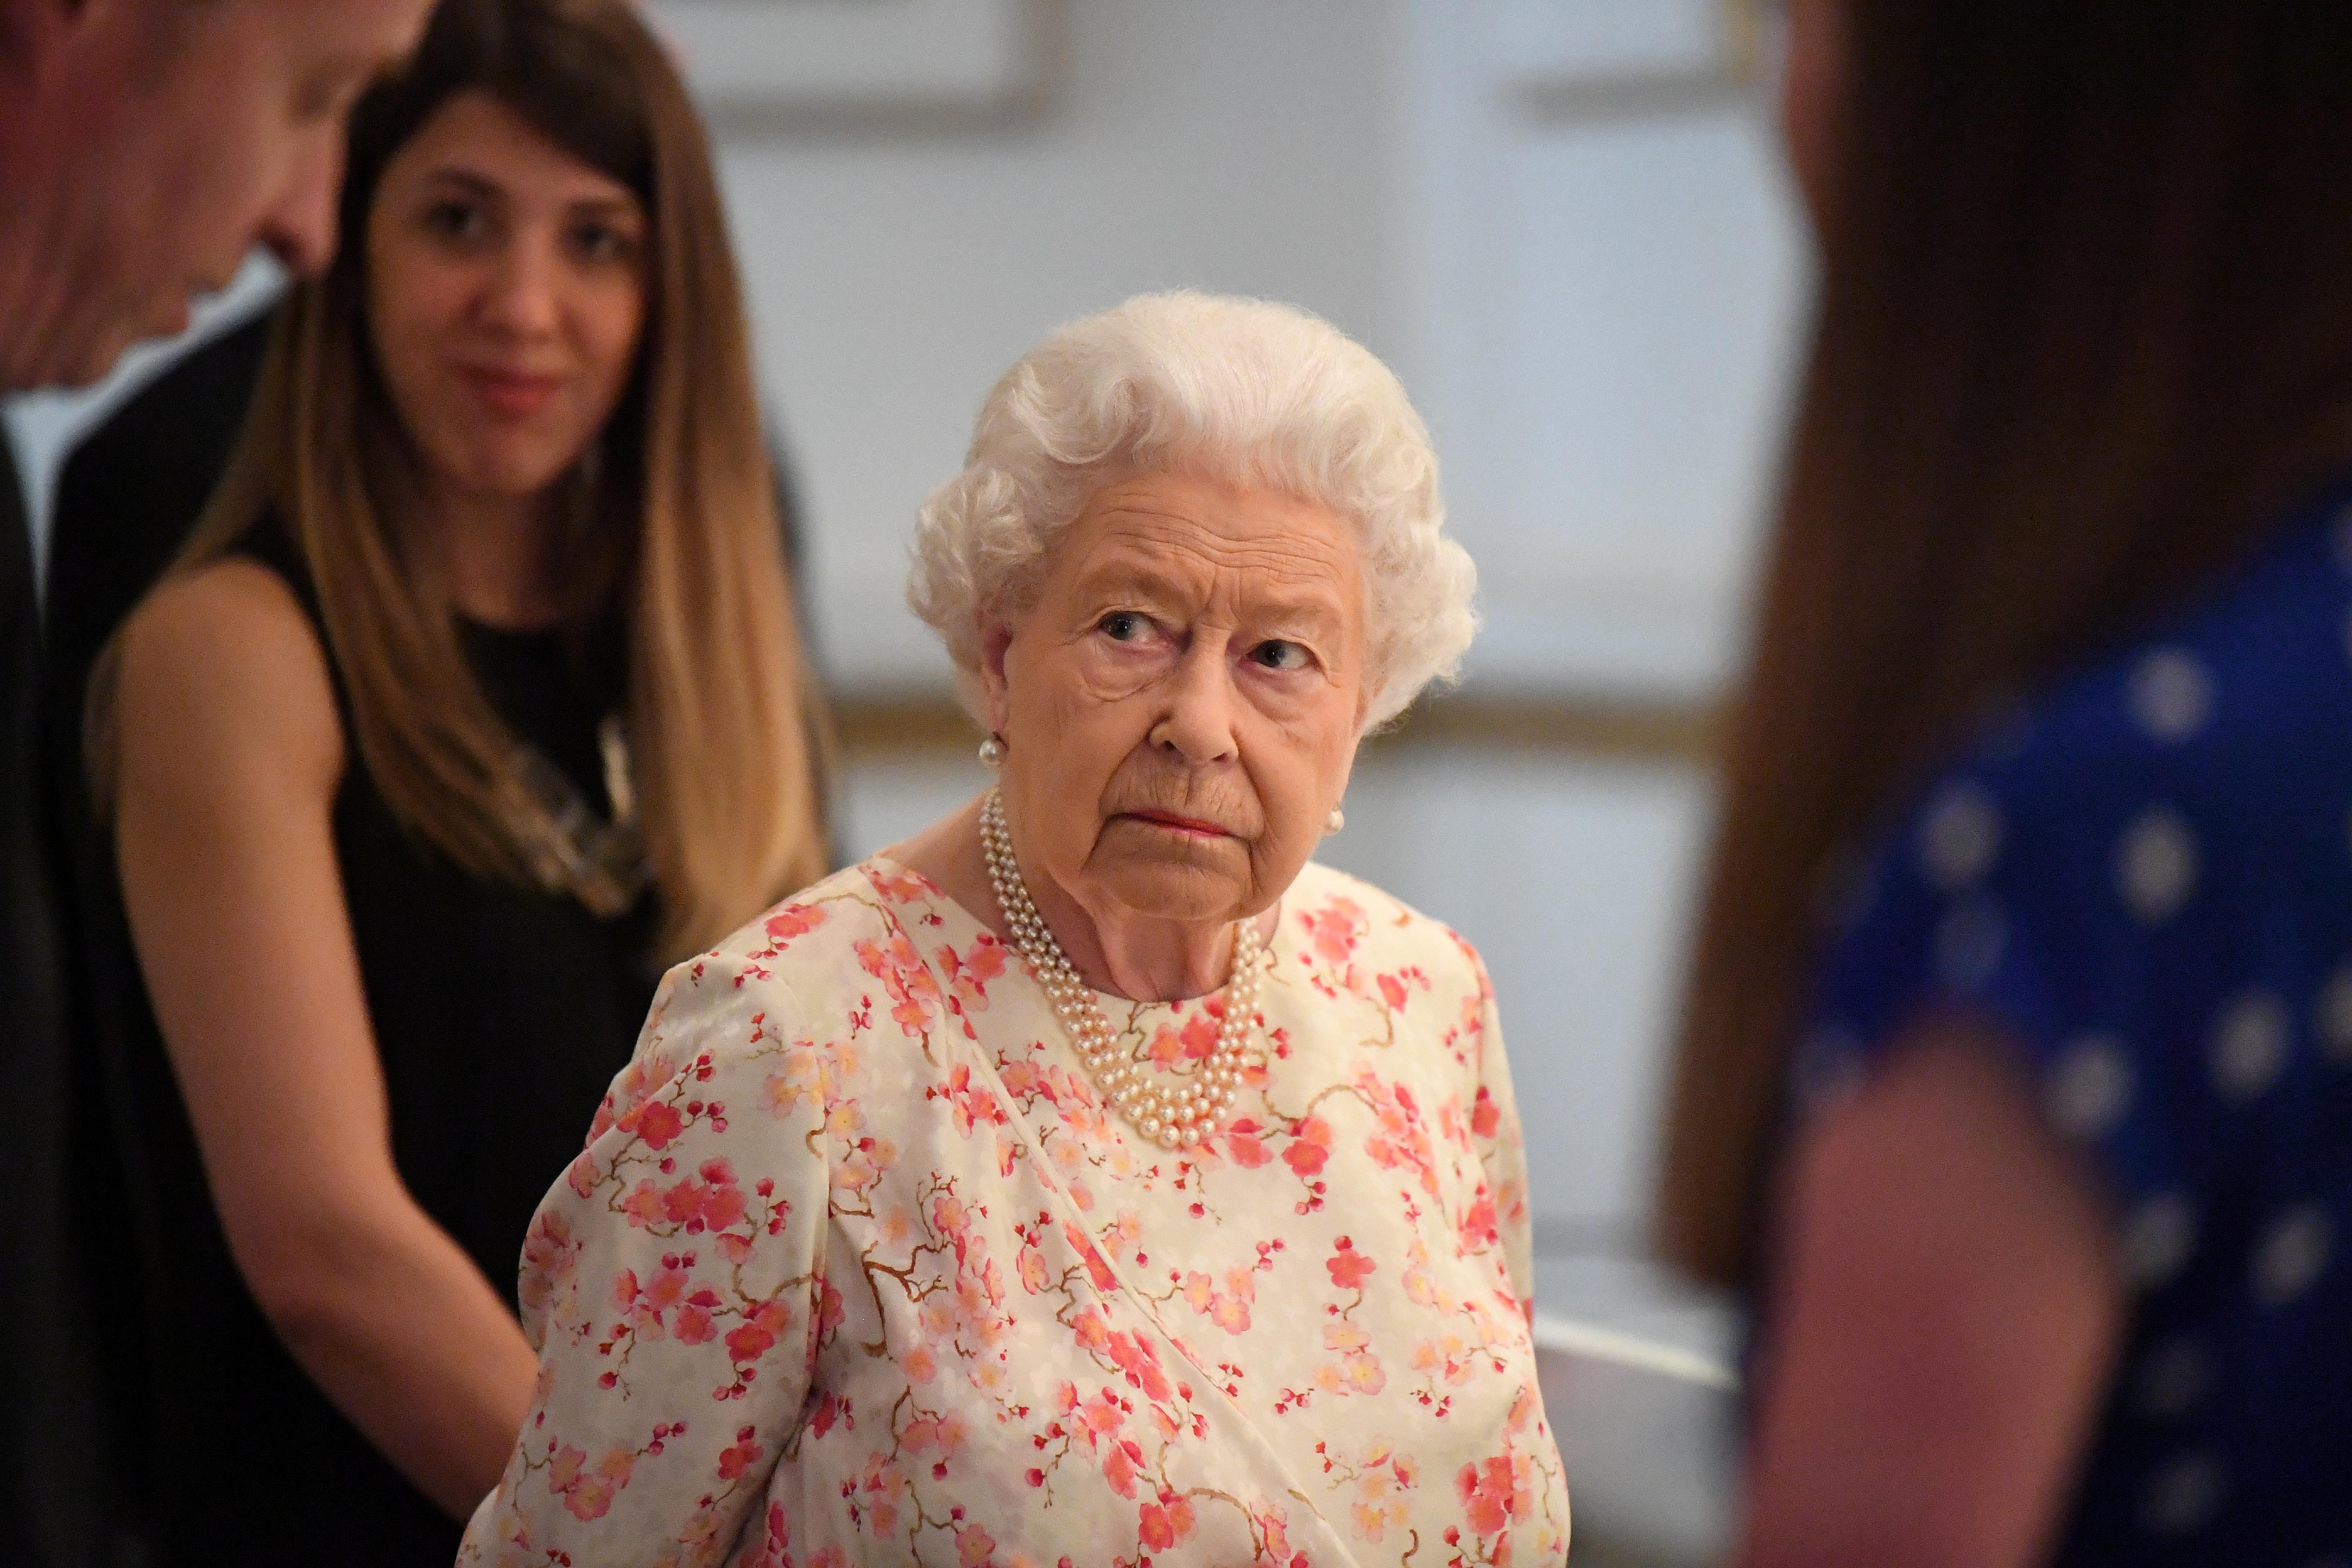 Britain's Queen Elizabeth II attends a special exhibition celebrating the 200th anniversary of the birth of Queen Victoria which marks this year's Summer Opening of Buckingham Palace in London, Britain, July 17, 2019. Victoria Jones/Pool via REUTERS